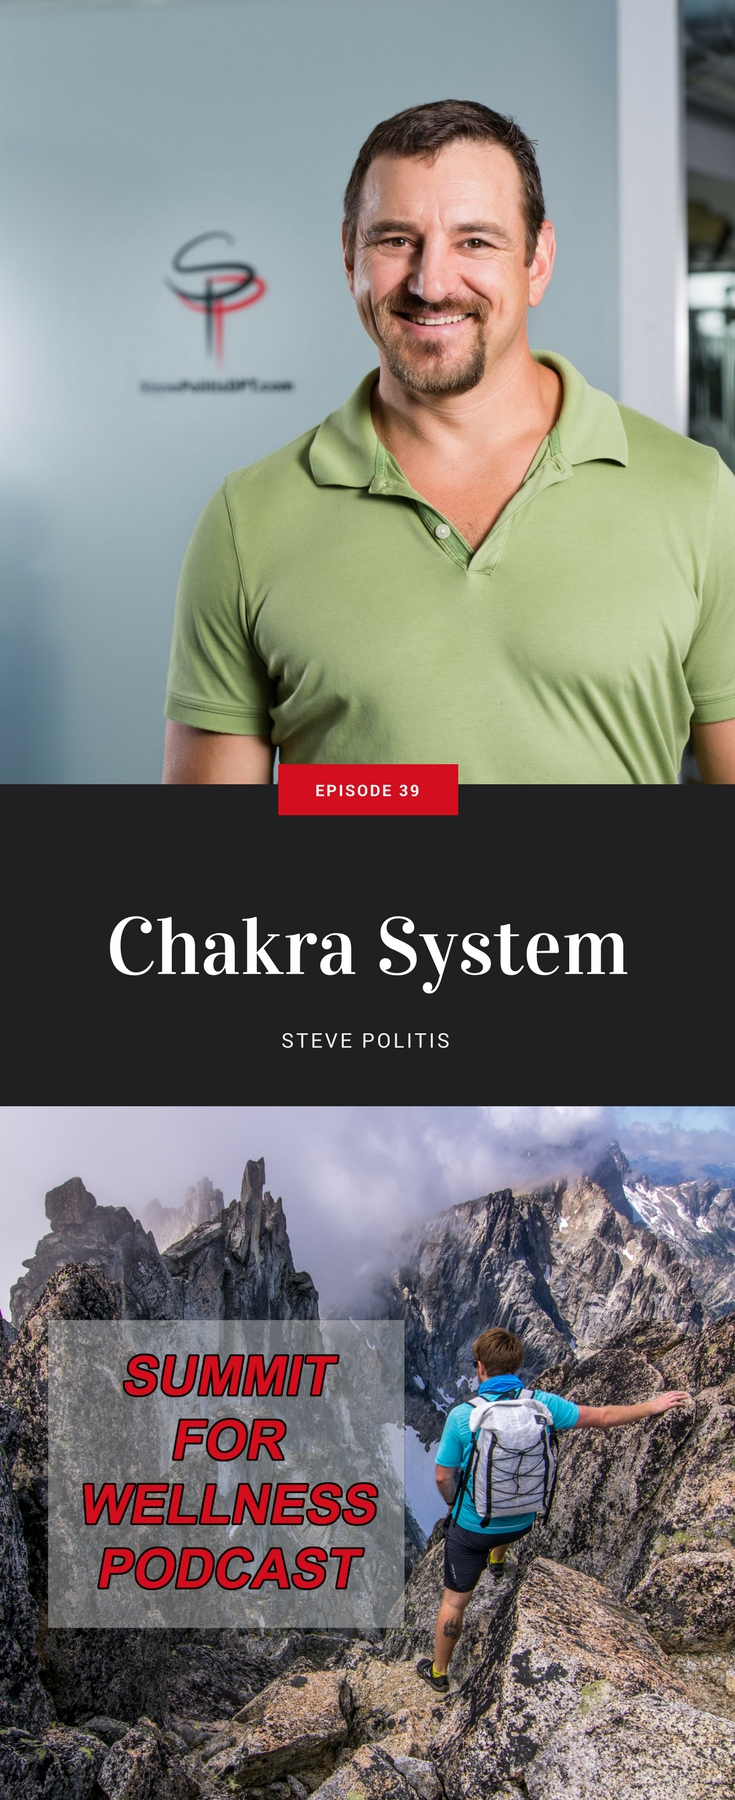 Steve Politis of Kineci Physical Therapy combines rehabilitation services with the Chakra System